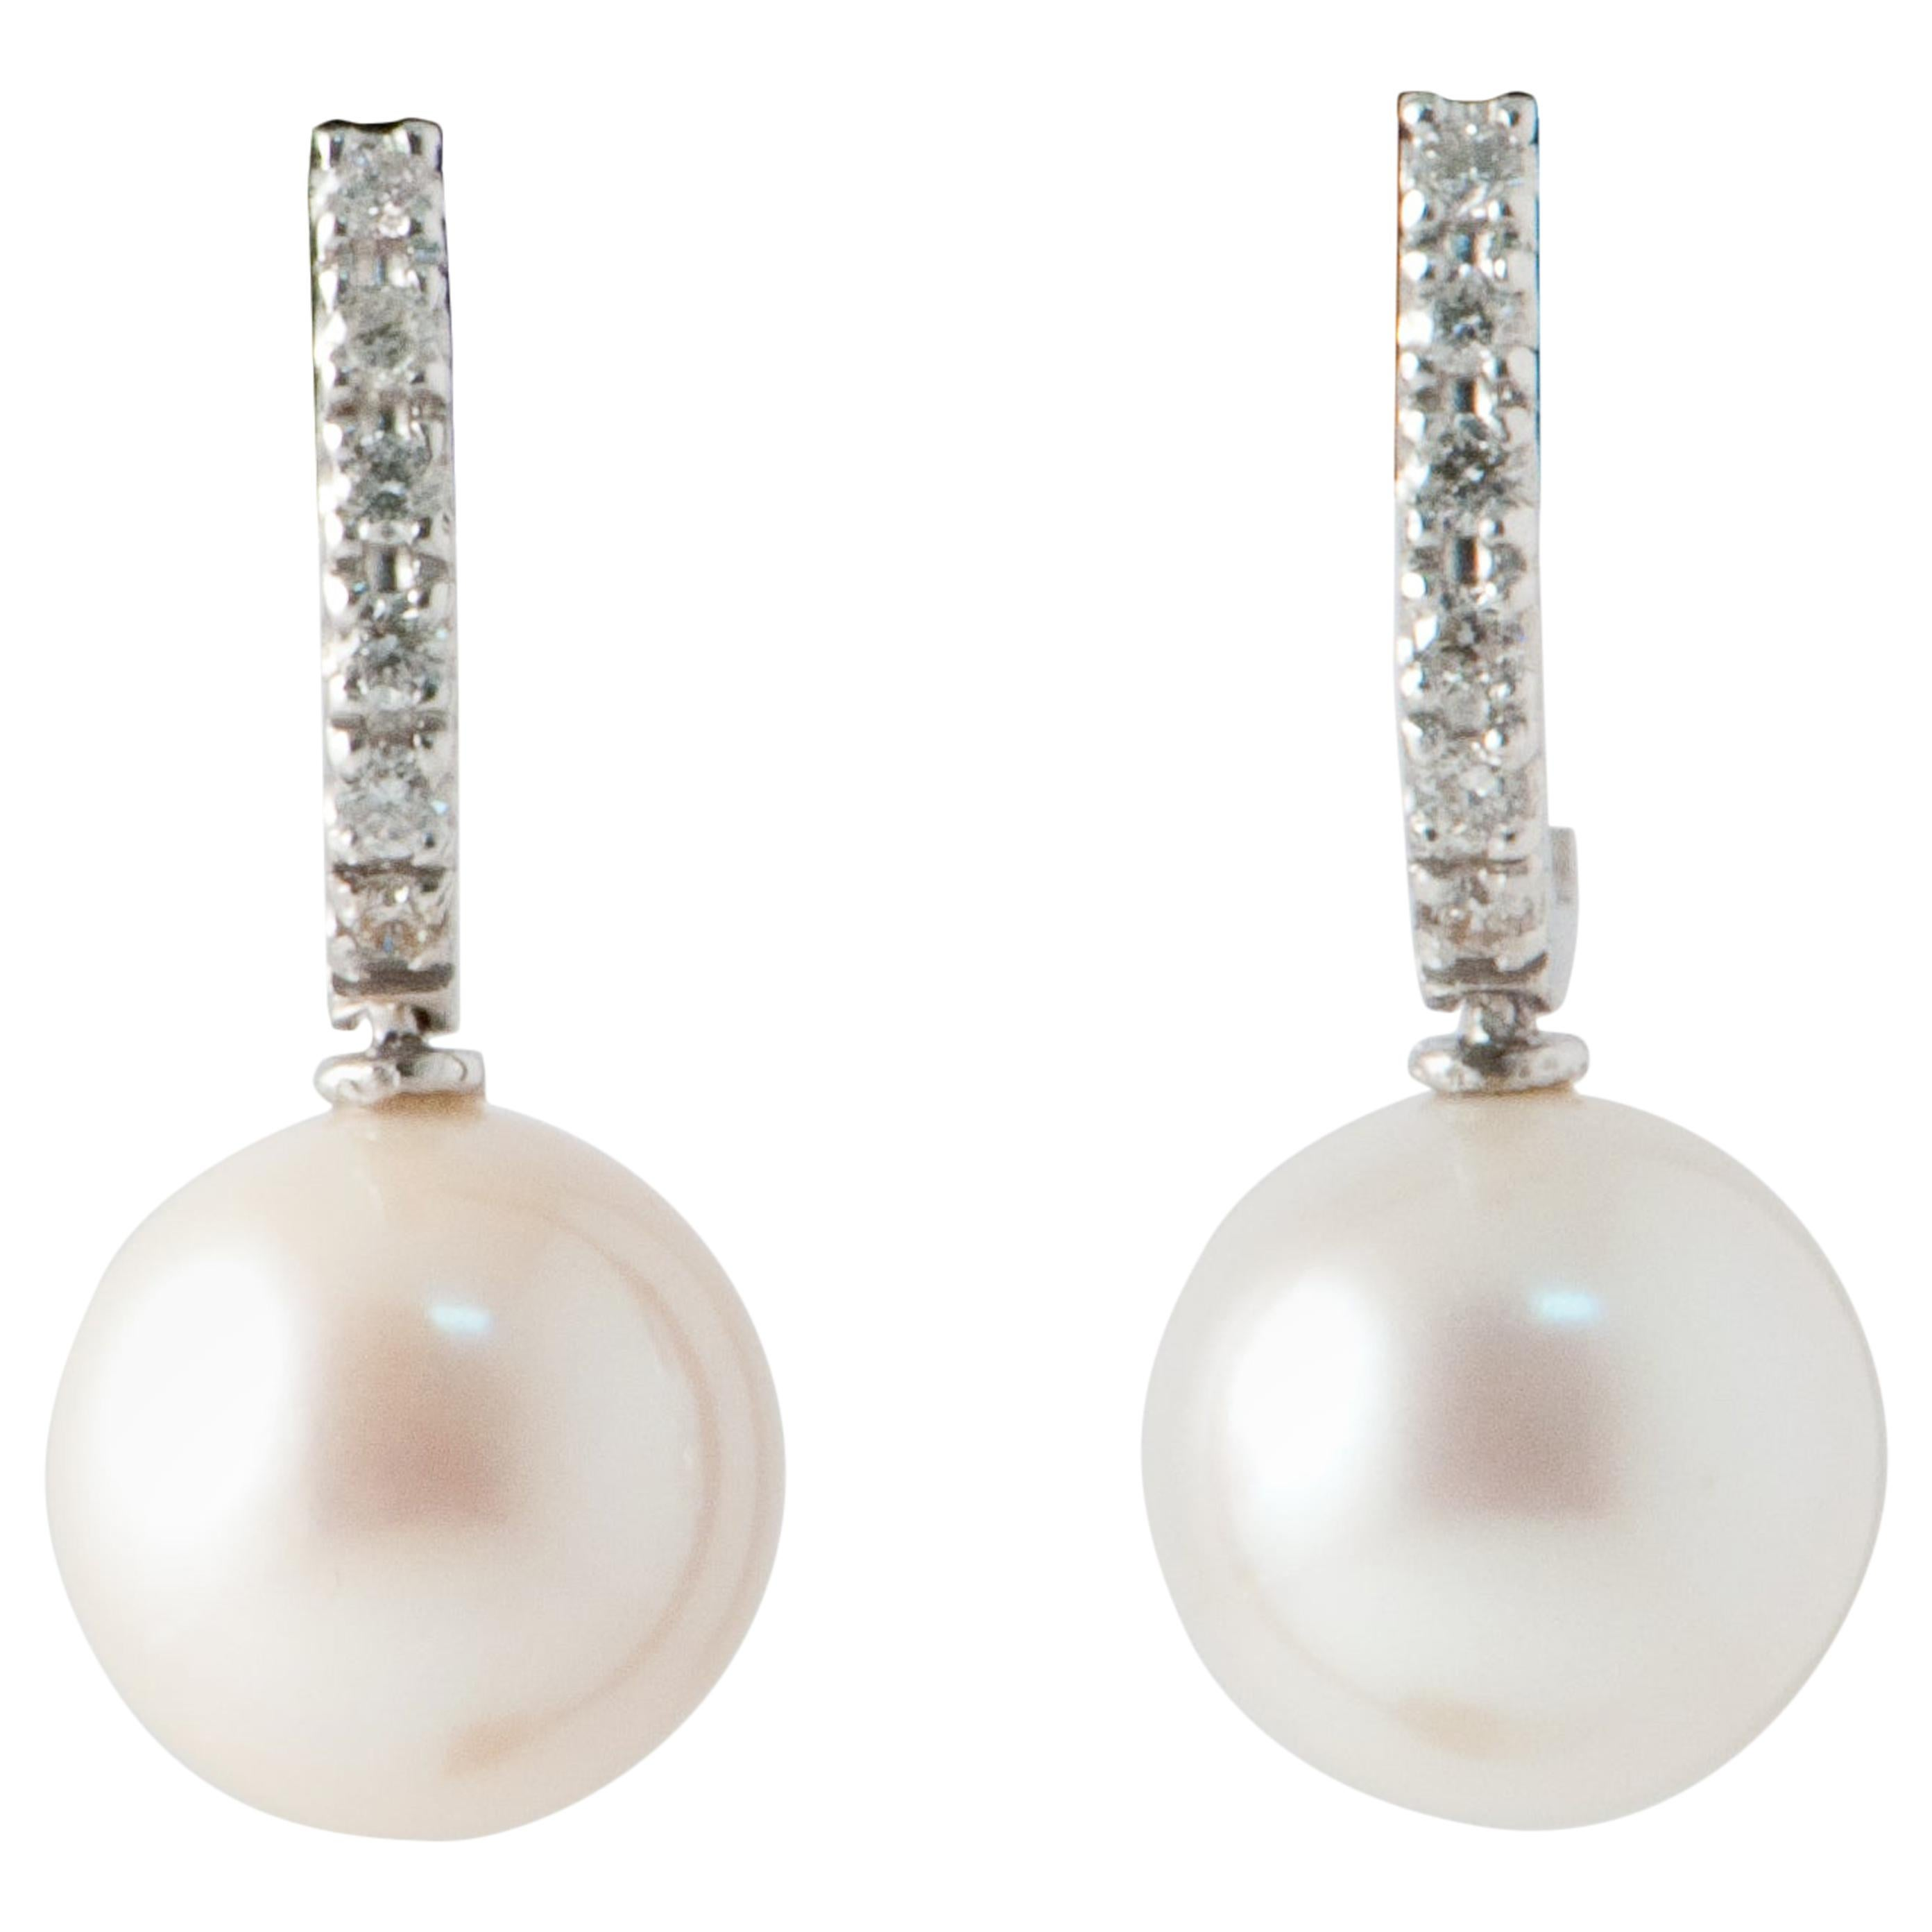 Freshwater Pearls and White Diamonds on White Gold 18 Karat Drop Earrings